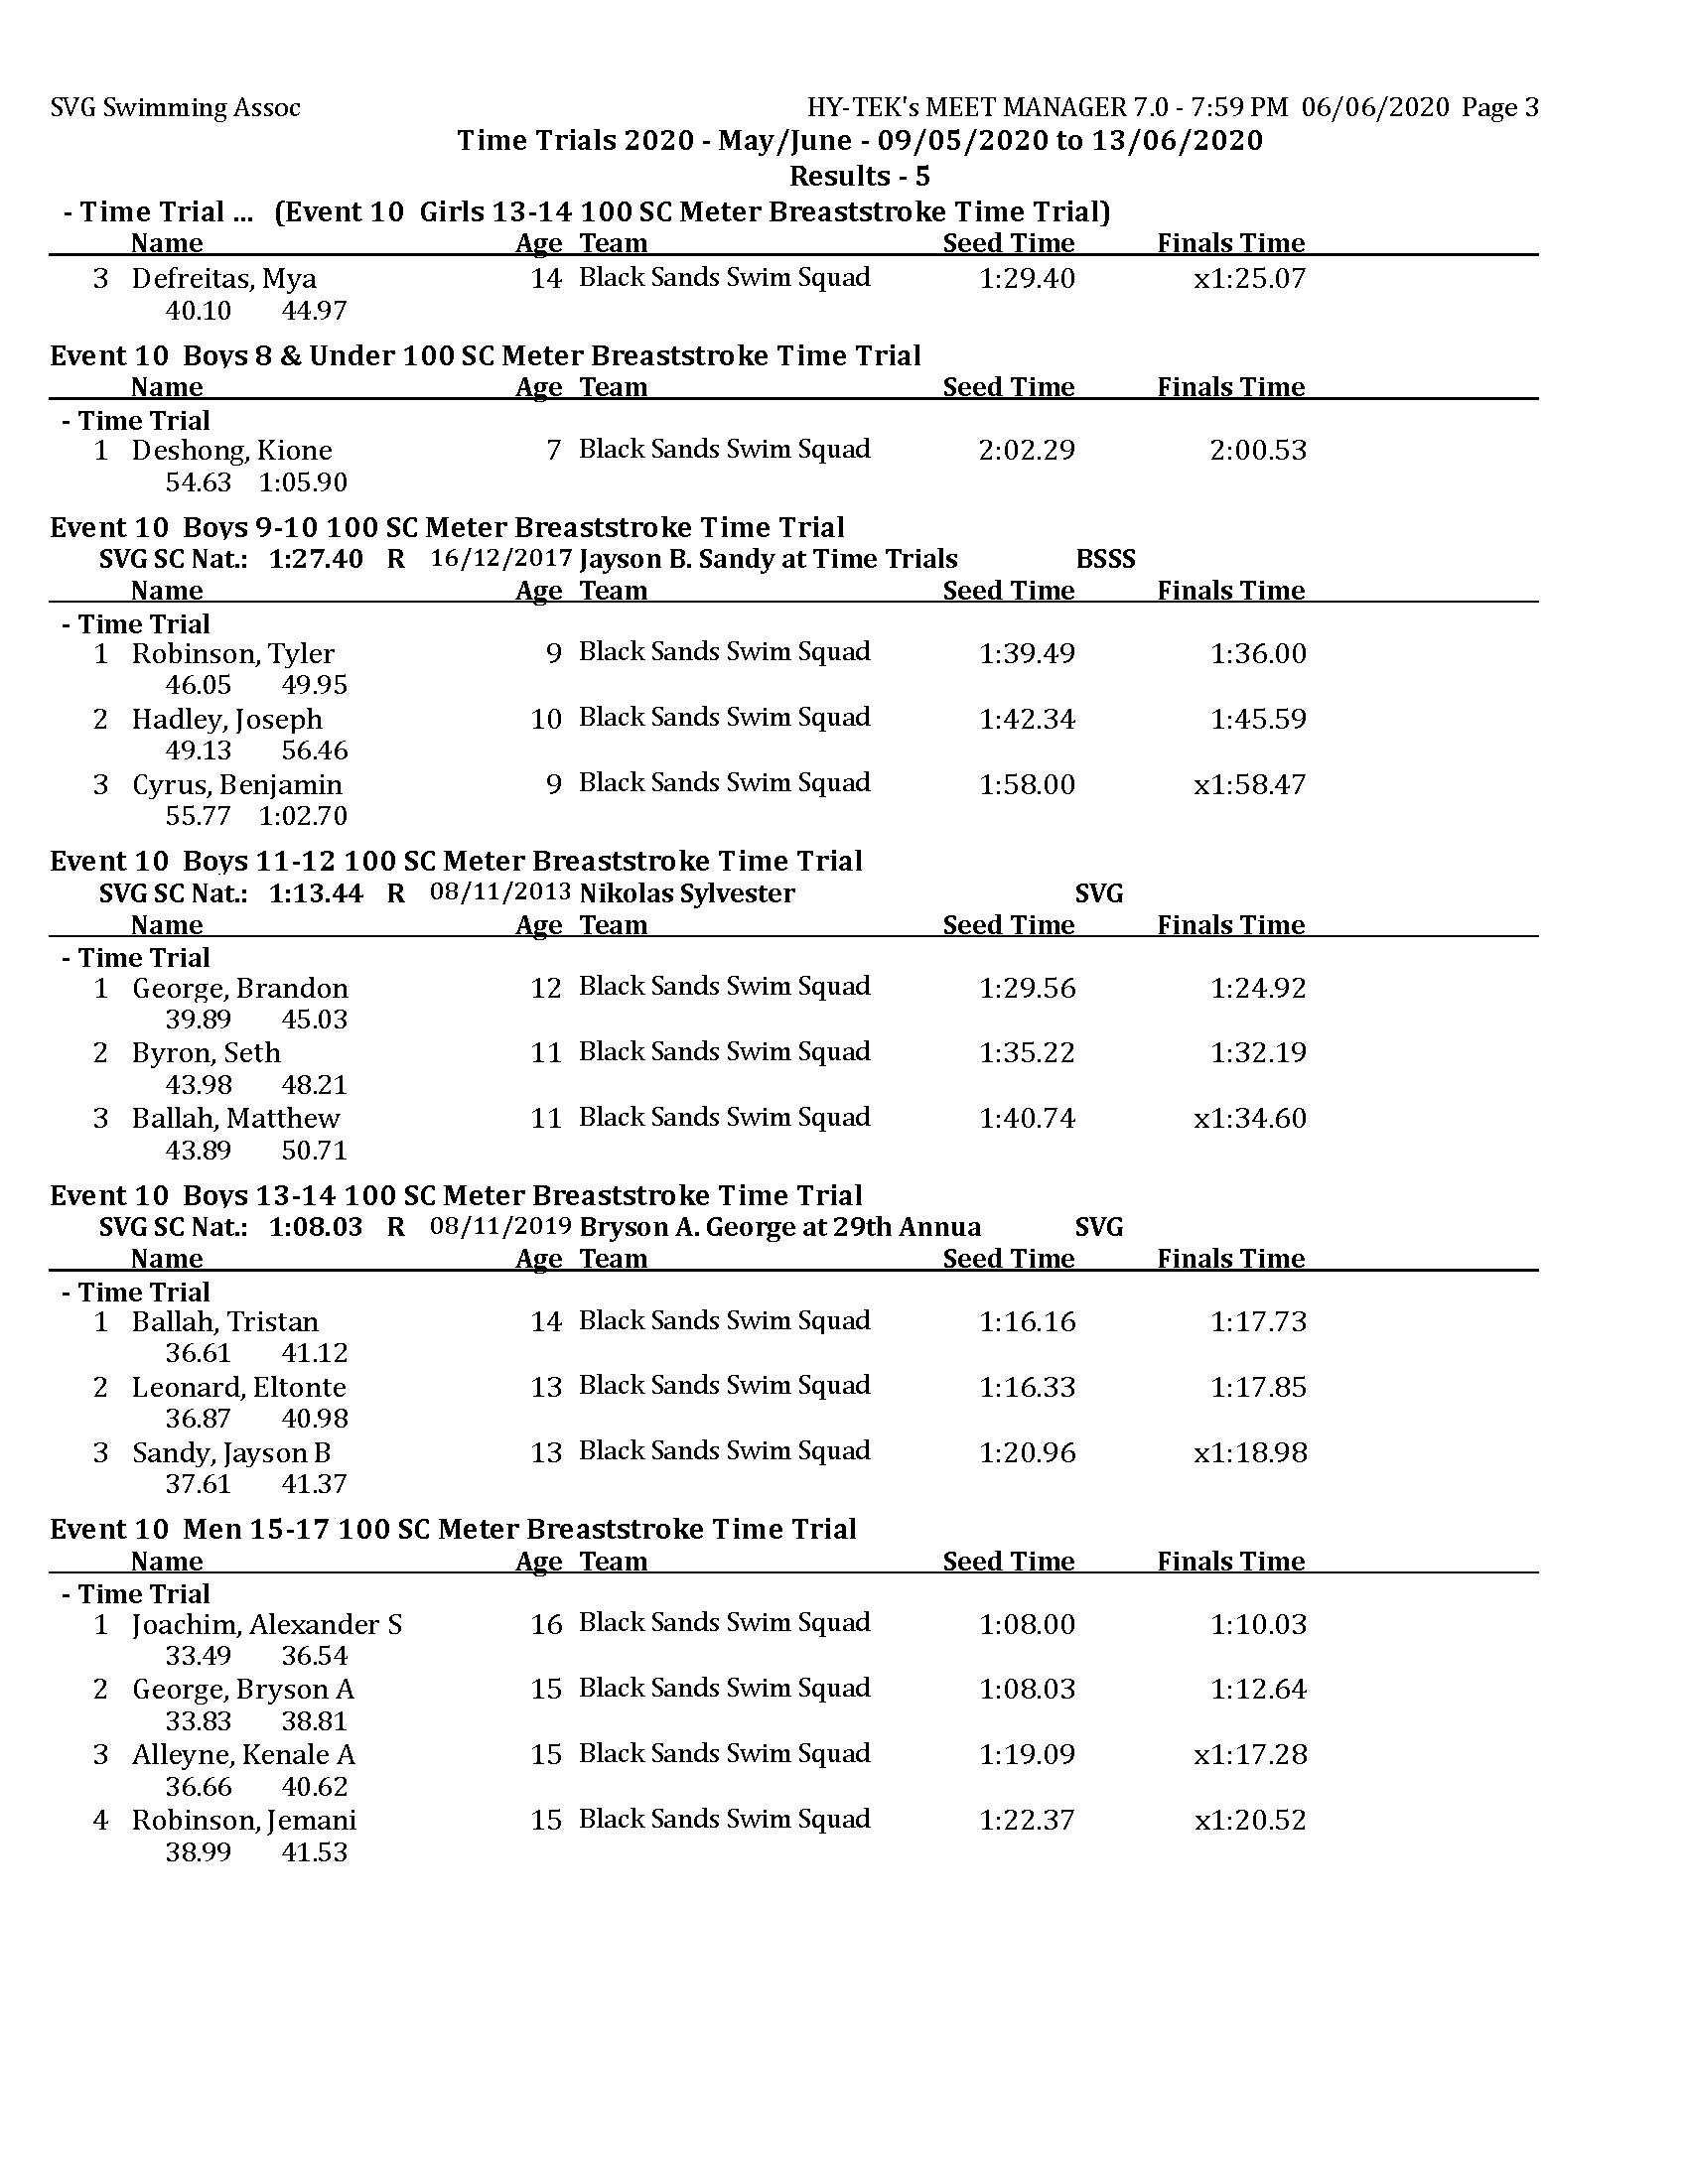 TT 2020 - May - Results day 5 MM_Page_3